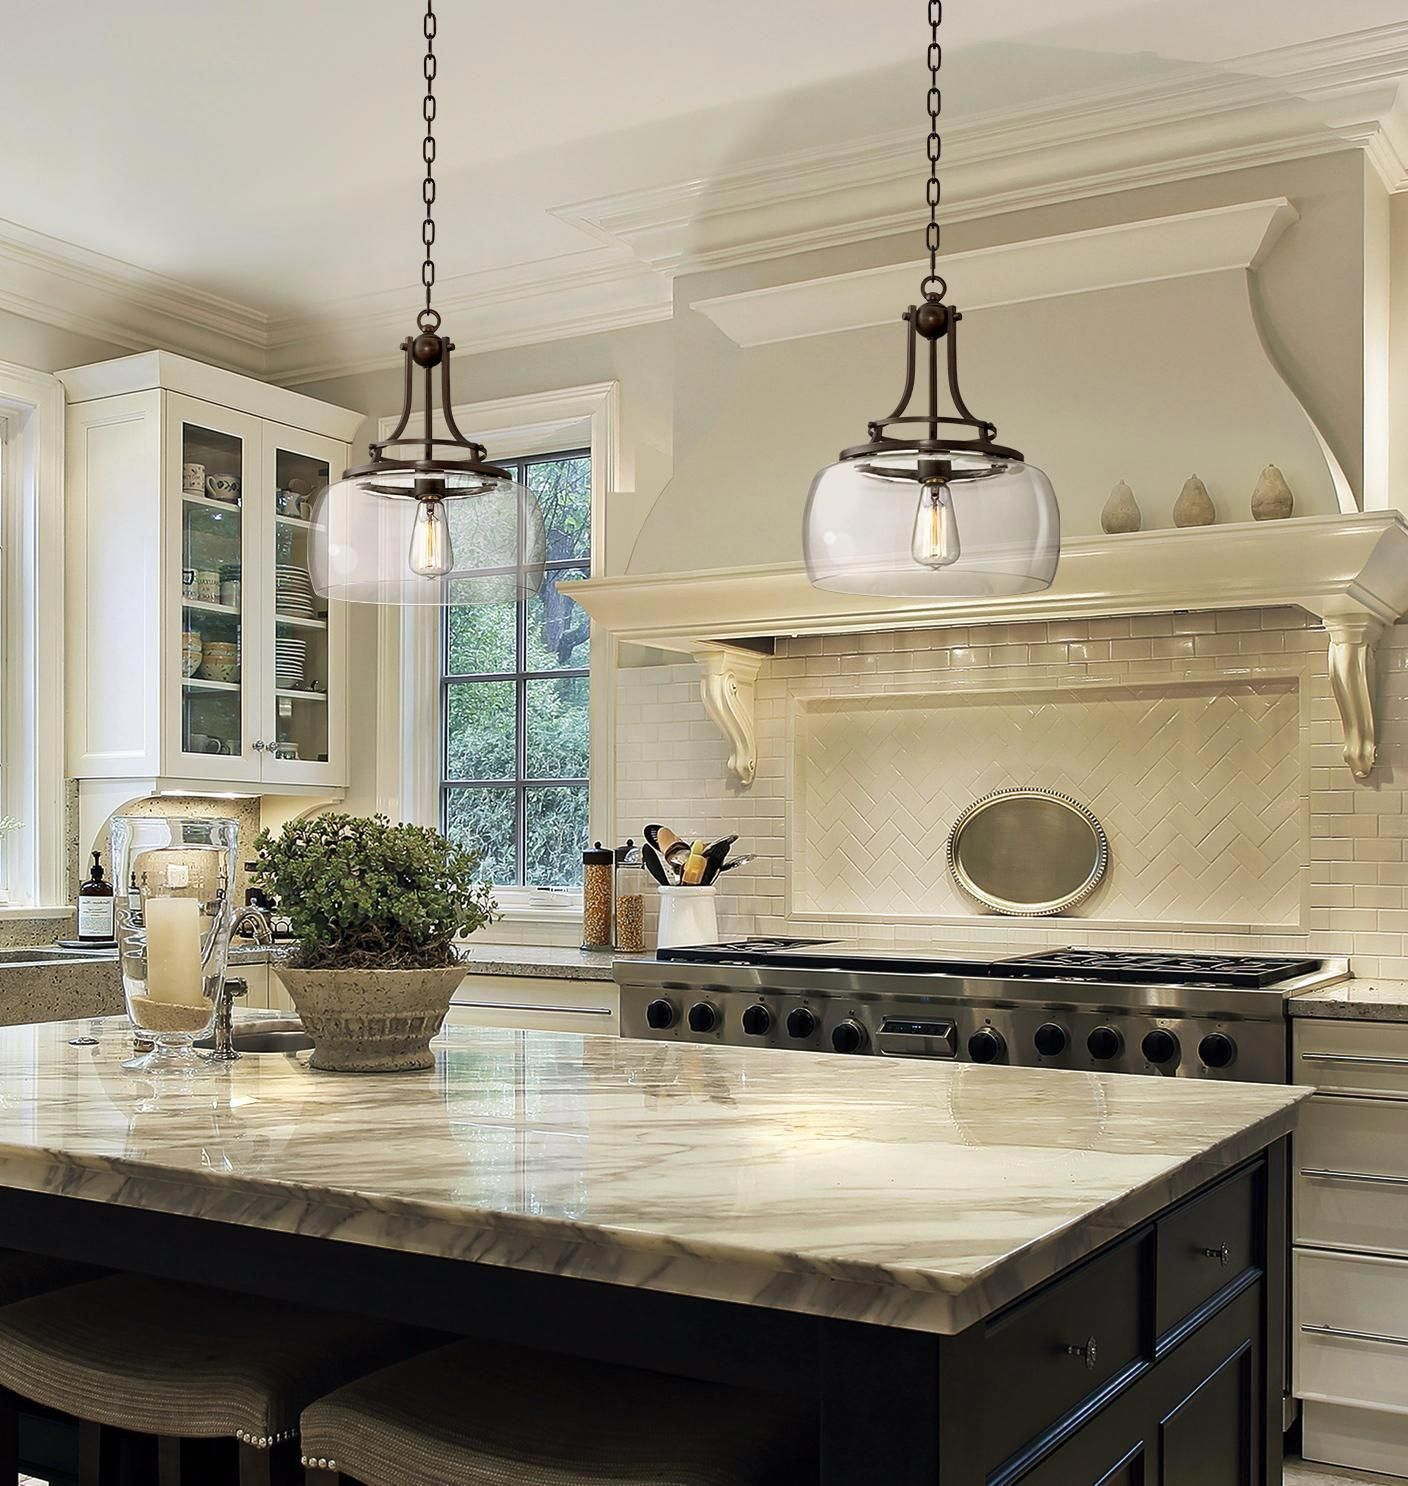 How to design a kitchen you will not get tired of in 2020